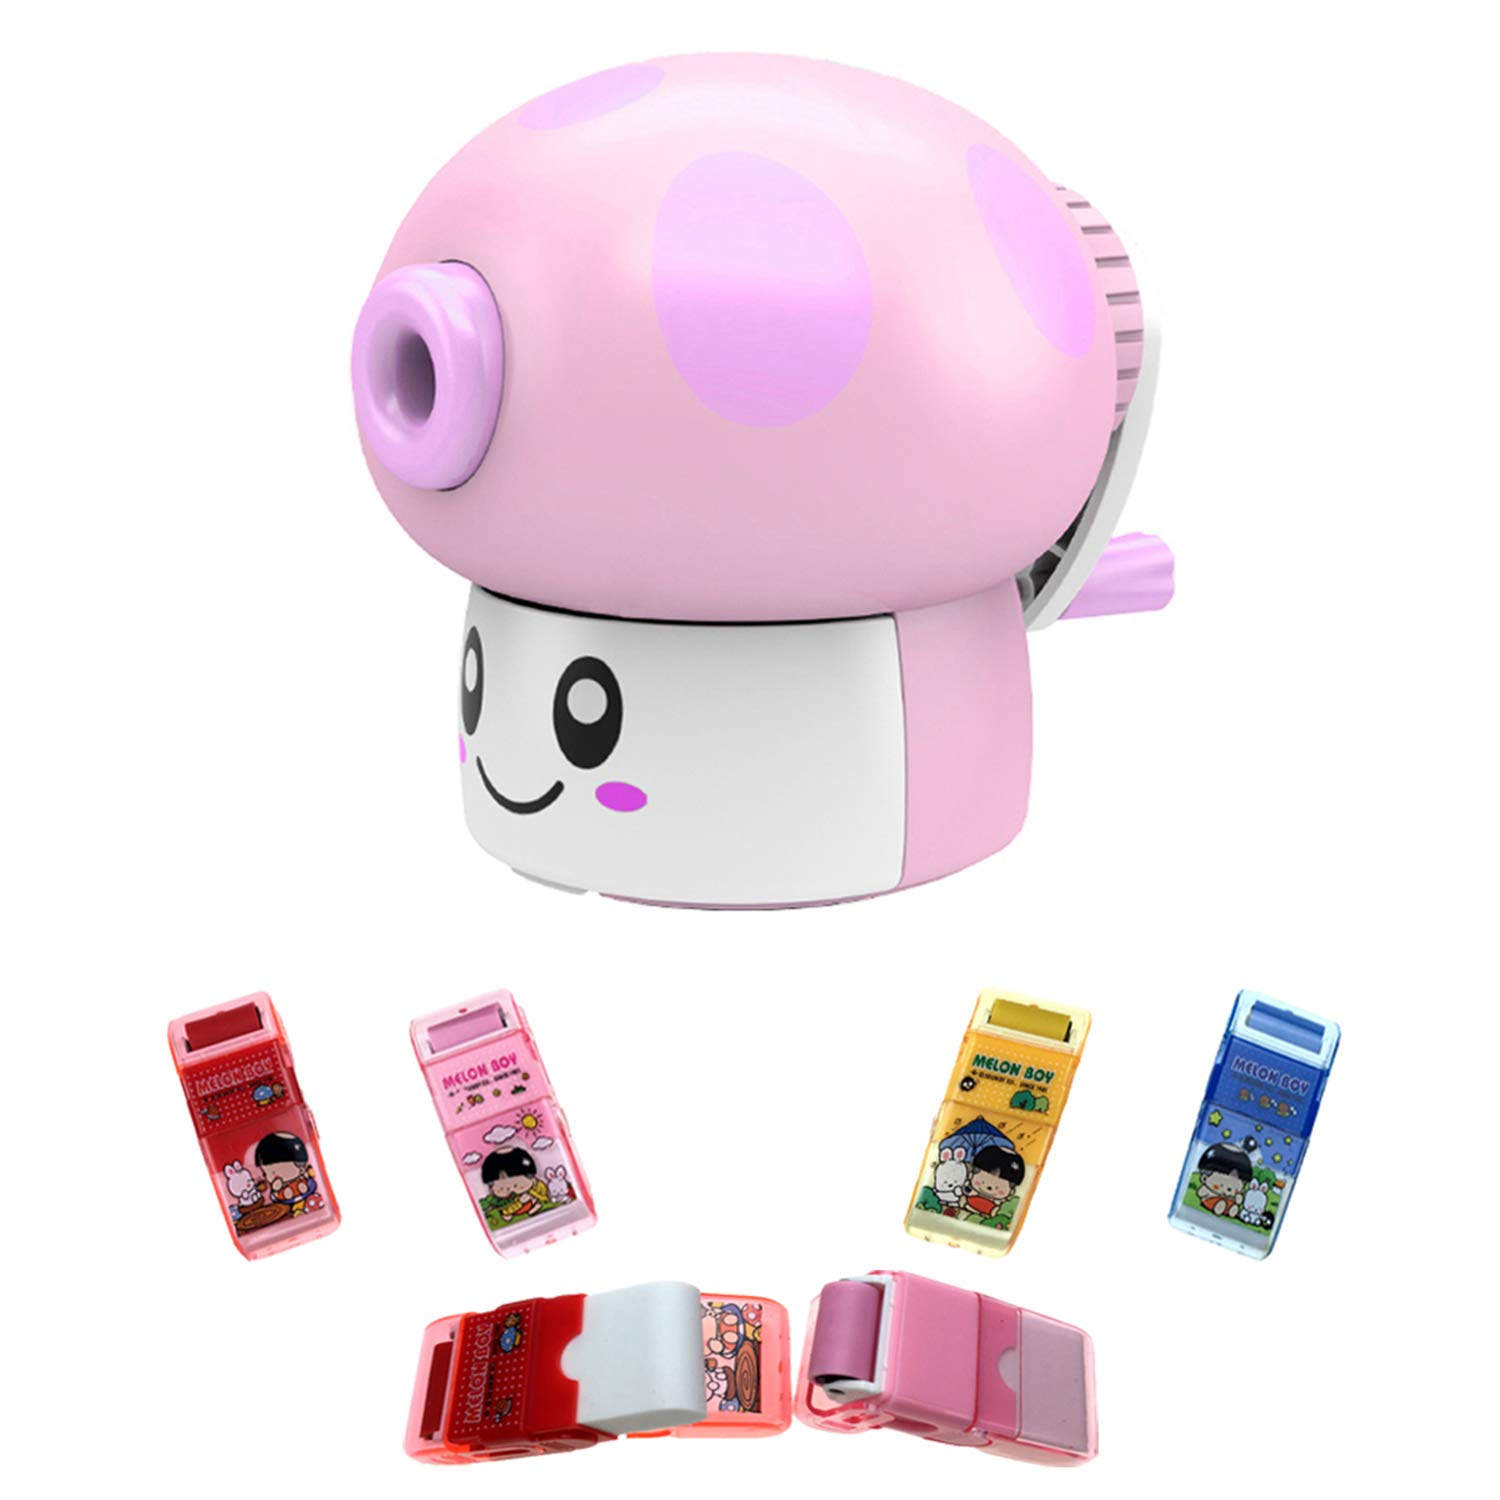 Novelty Pencil Sharpener Advanced Pencil Sharpener and Eraser Set Desk and School Supplies Cute Birthday Party Kids Hand held Manual Pencil Sharpener Kids Best Gift Ideas blue